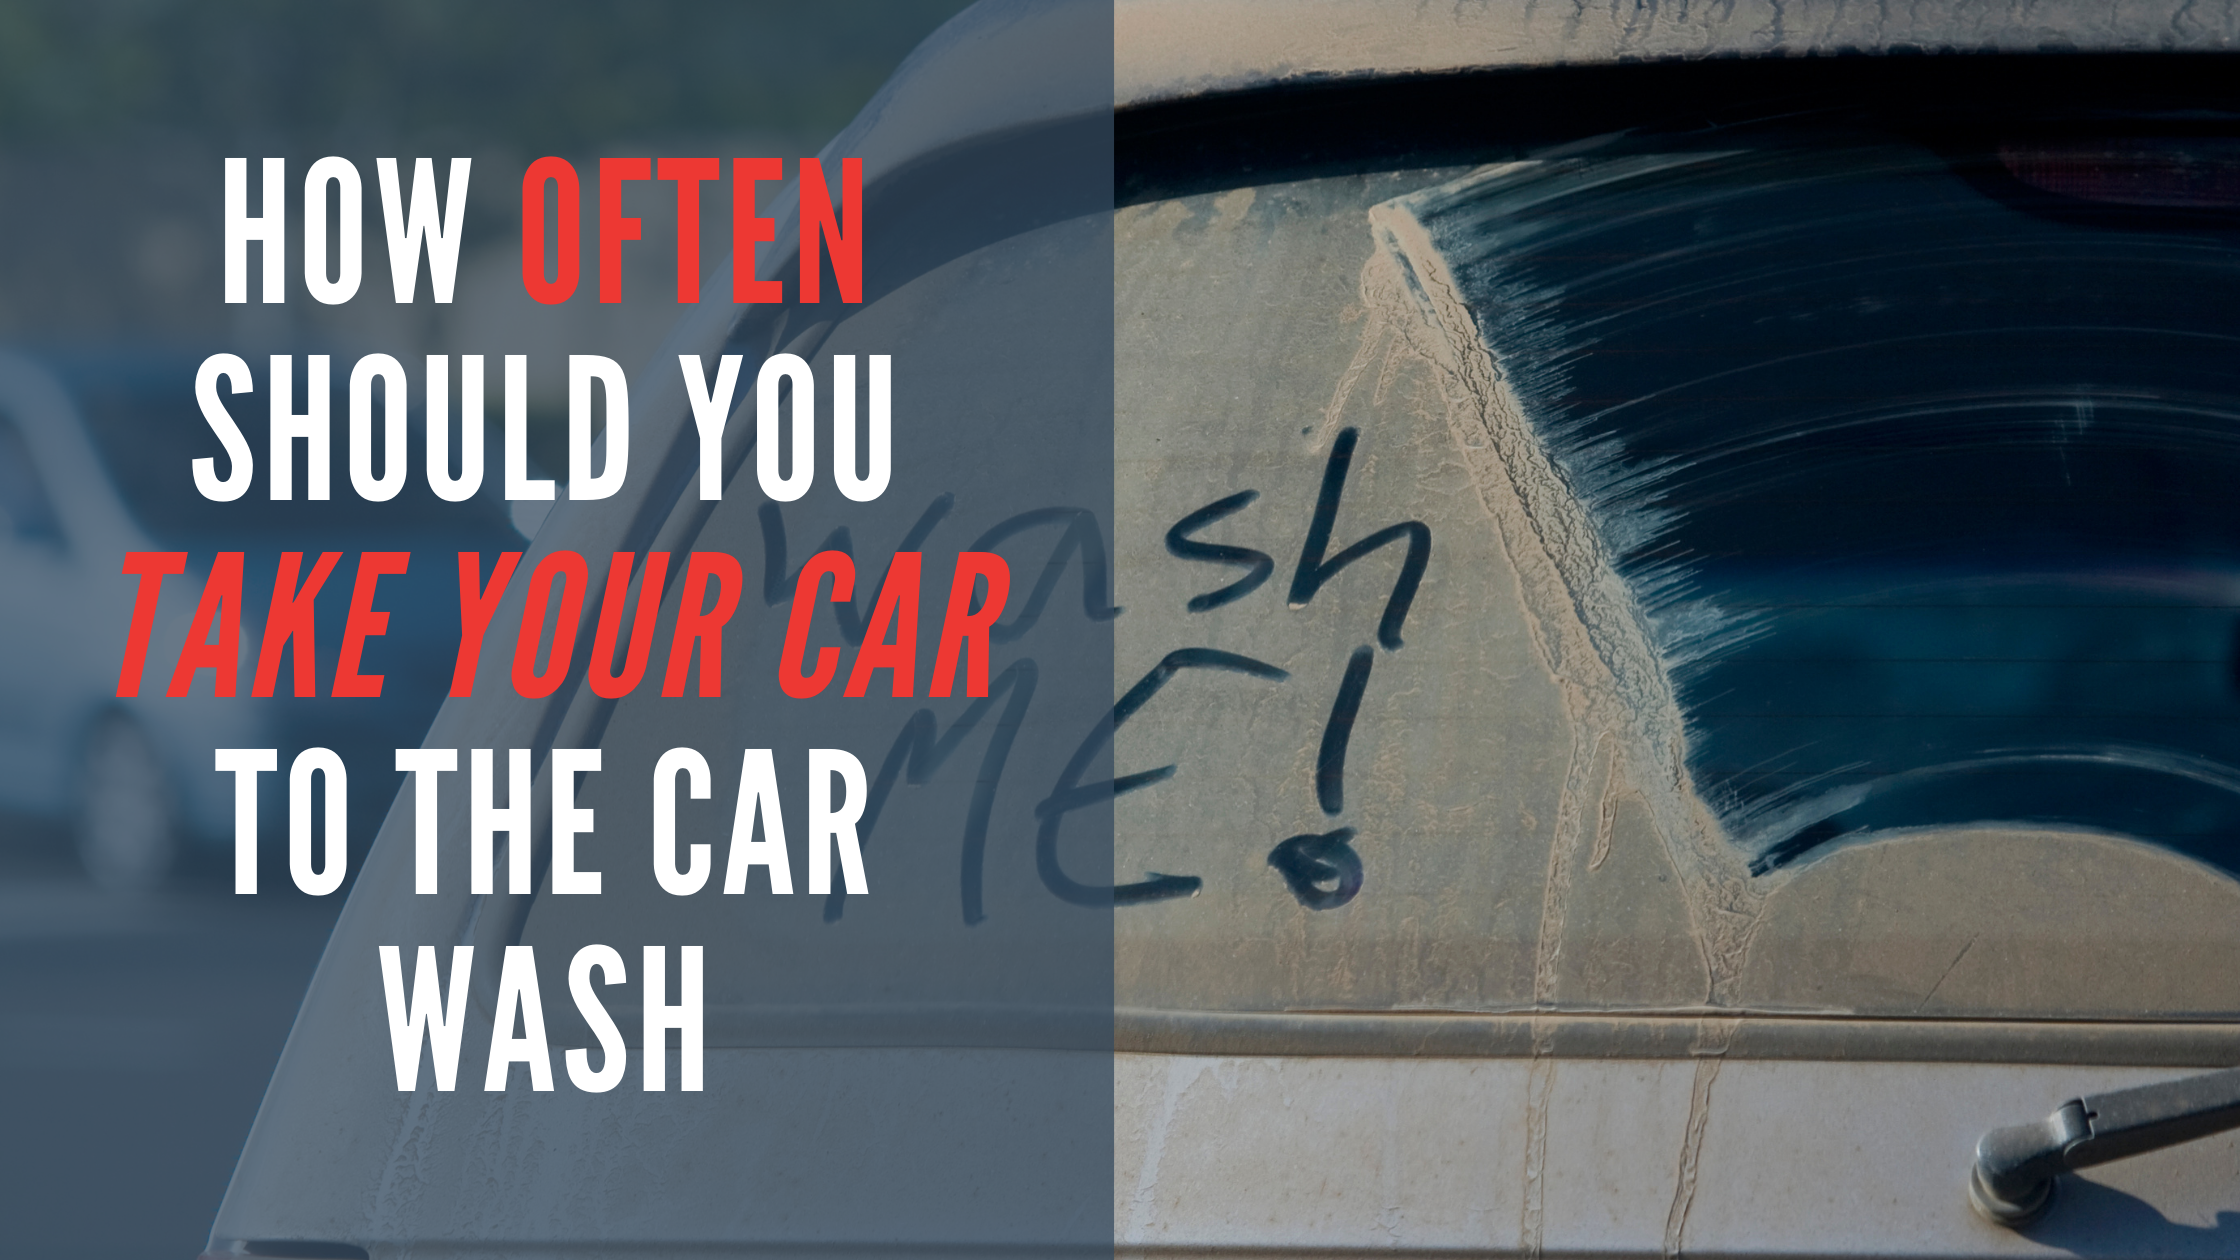 How Often Should You Take Your Car to the Car Wash